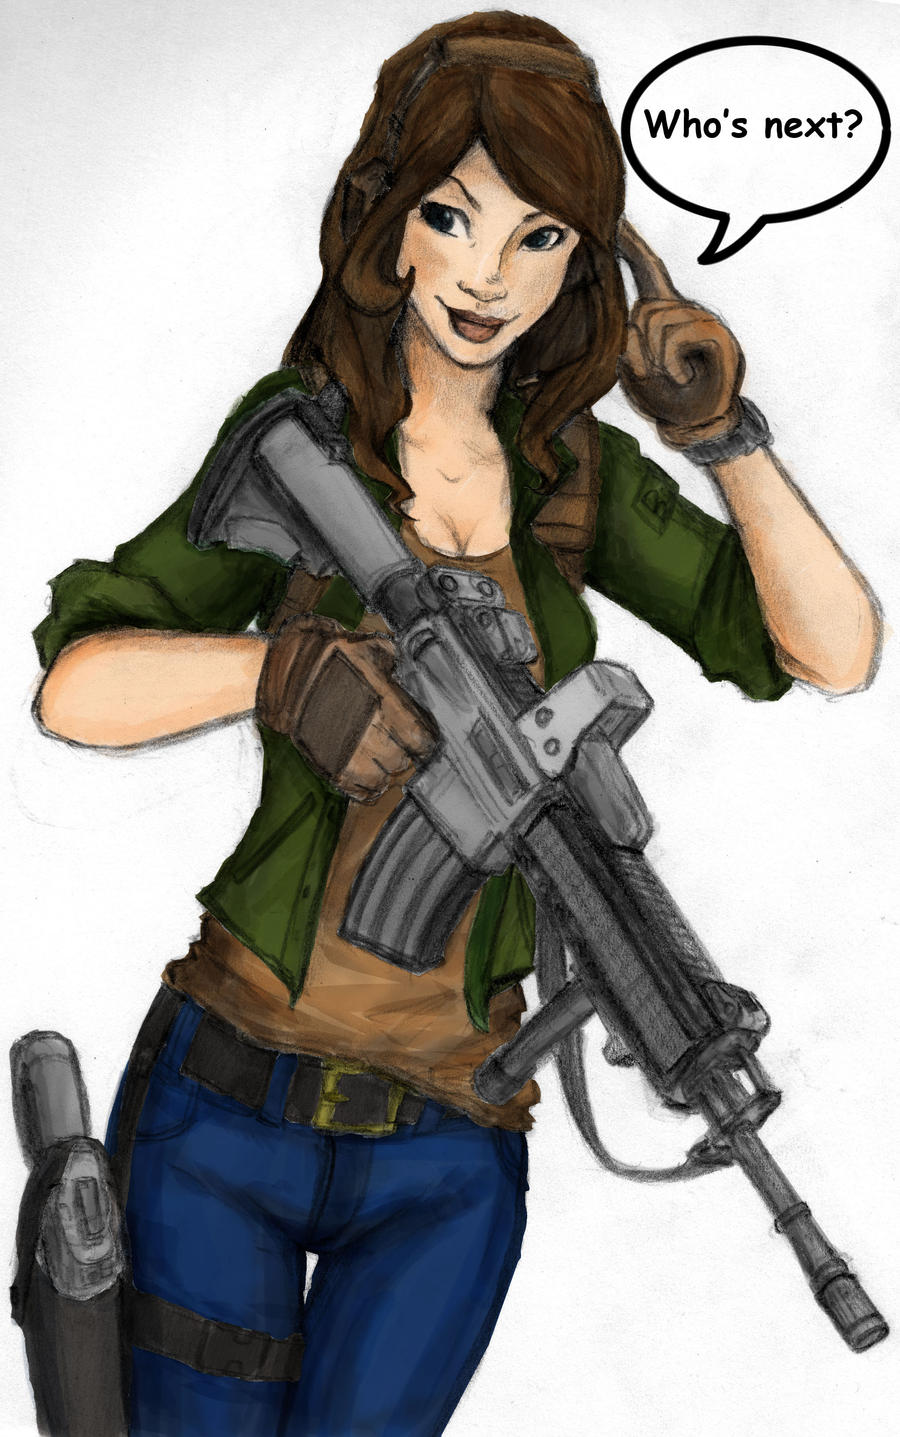 girl gamer requested by bro10 minecraft skin